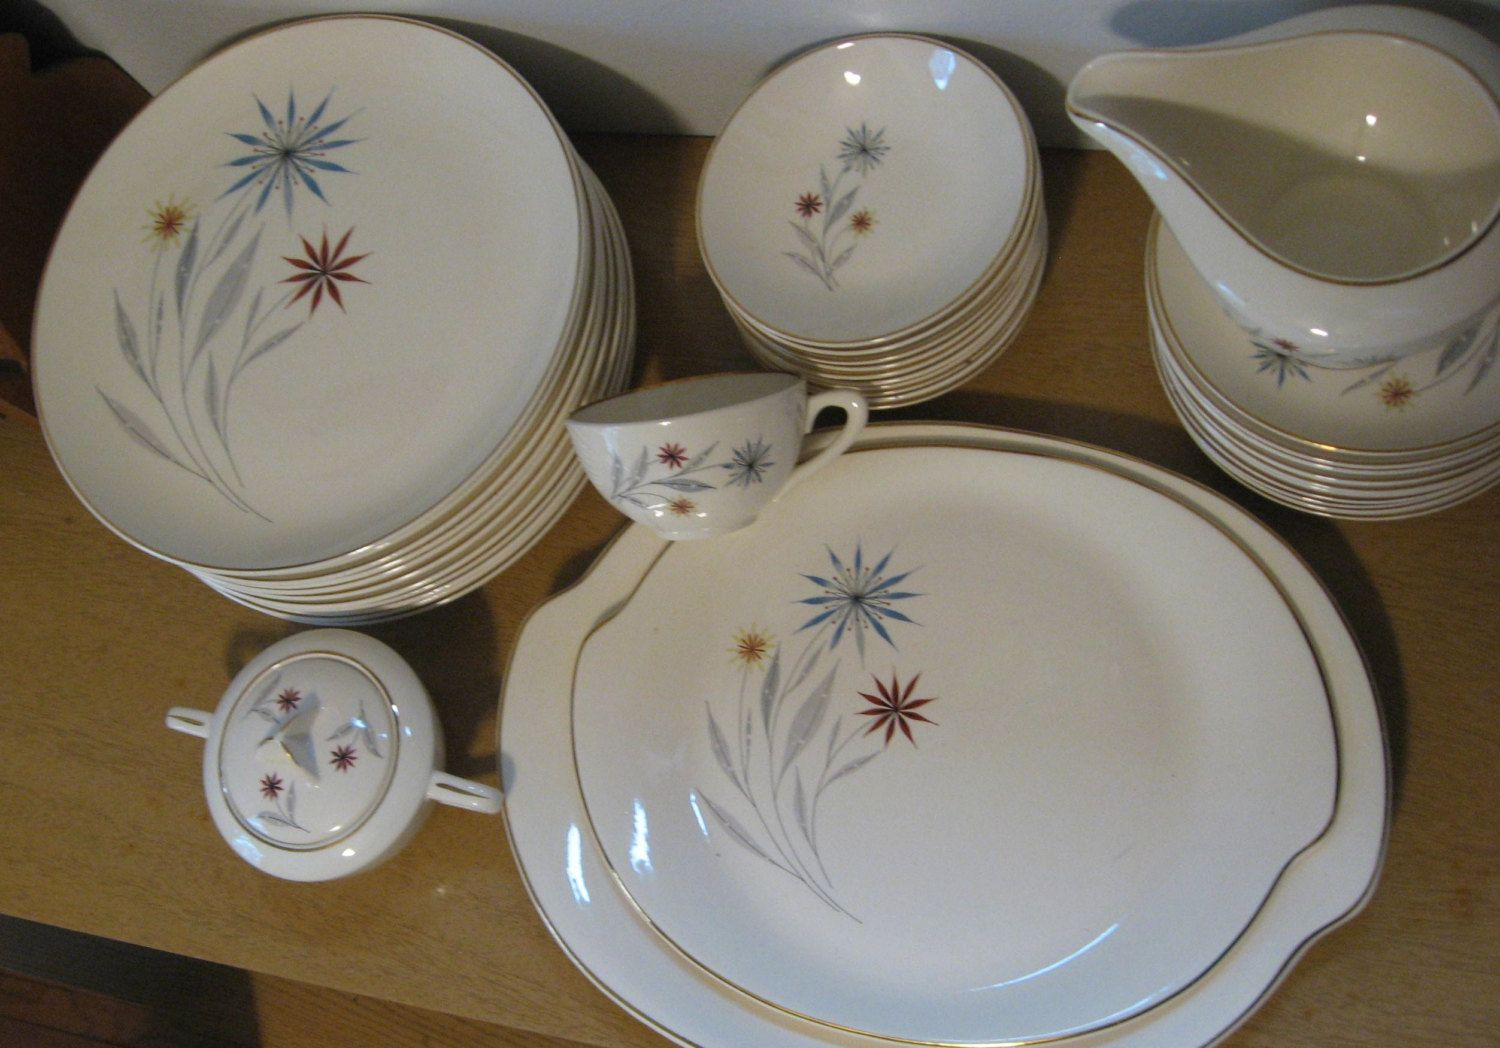 Vintage American Limoges Glamour Starflower china. Dinner Plates. Mid Century Modern China 1940s. 11 available. by PickleladyVintage on Etsy & Vintage American Limoges Glamour Starflower china. Dinner Plates ...